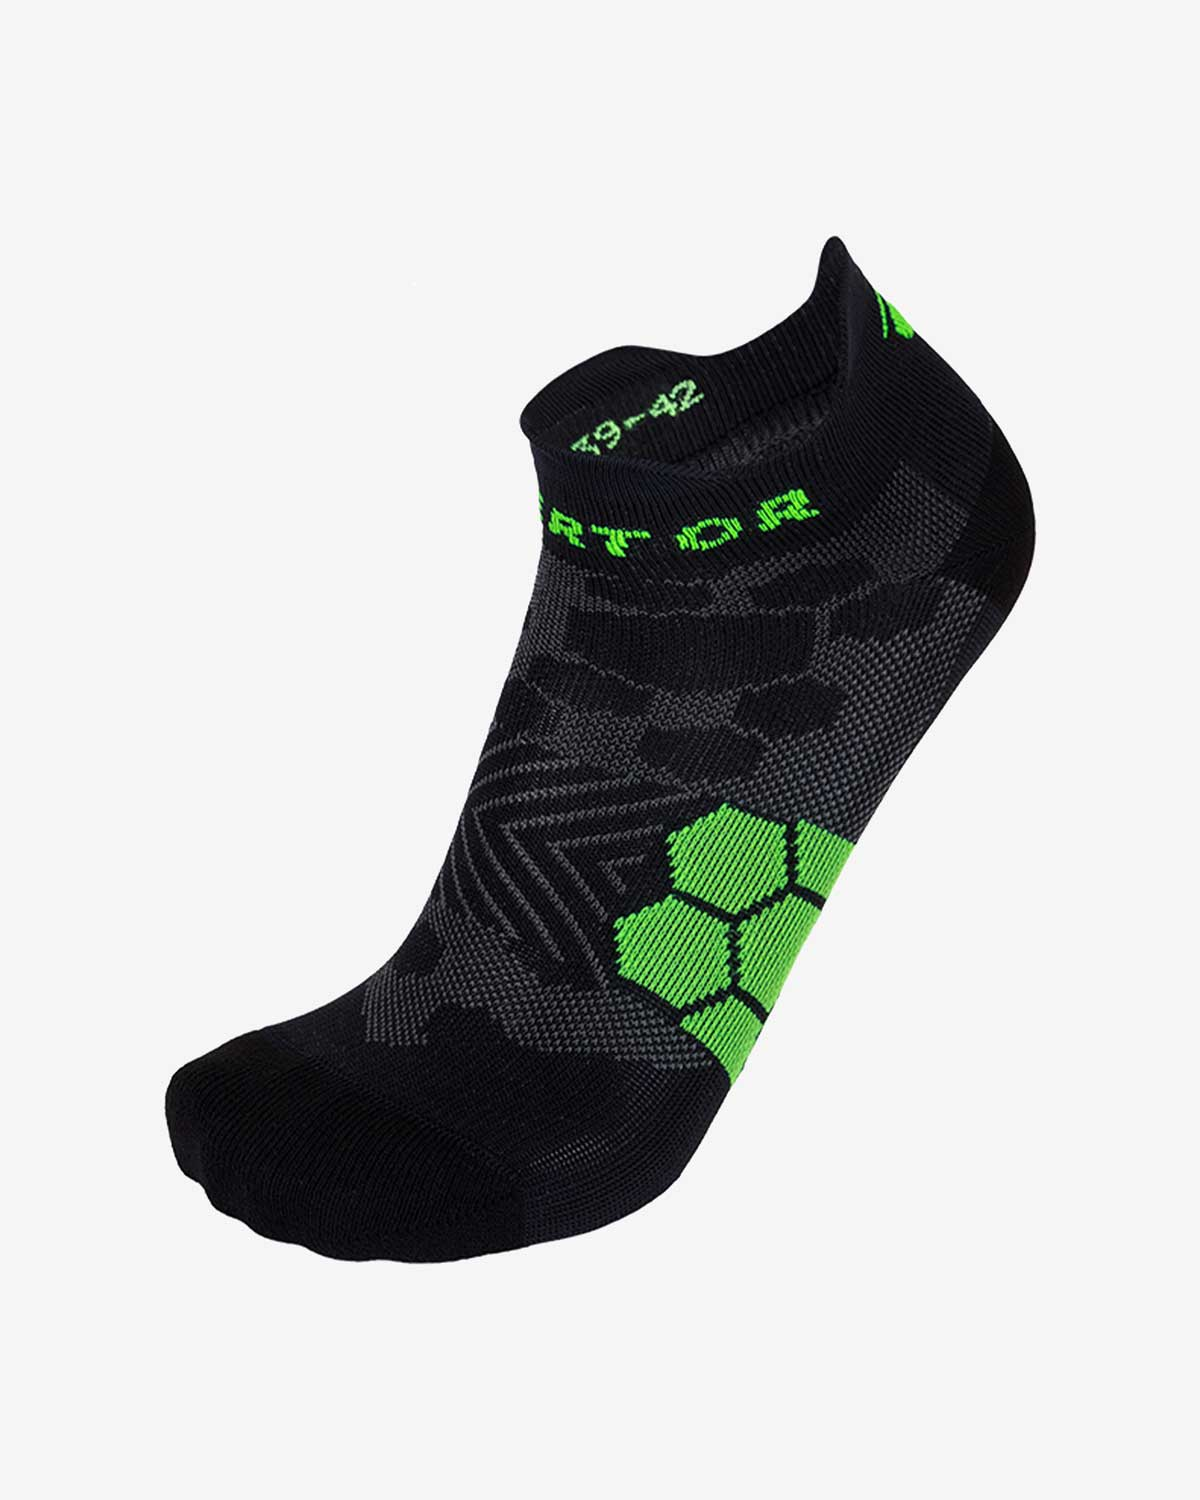 Enertor Specialist Black Running Socks